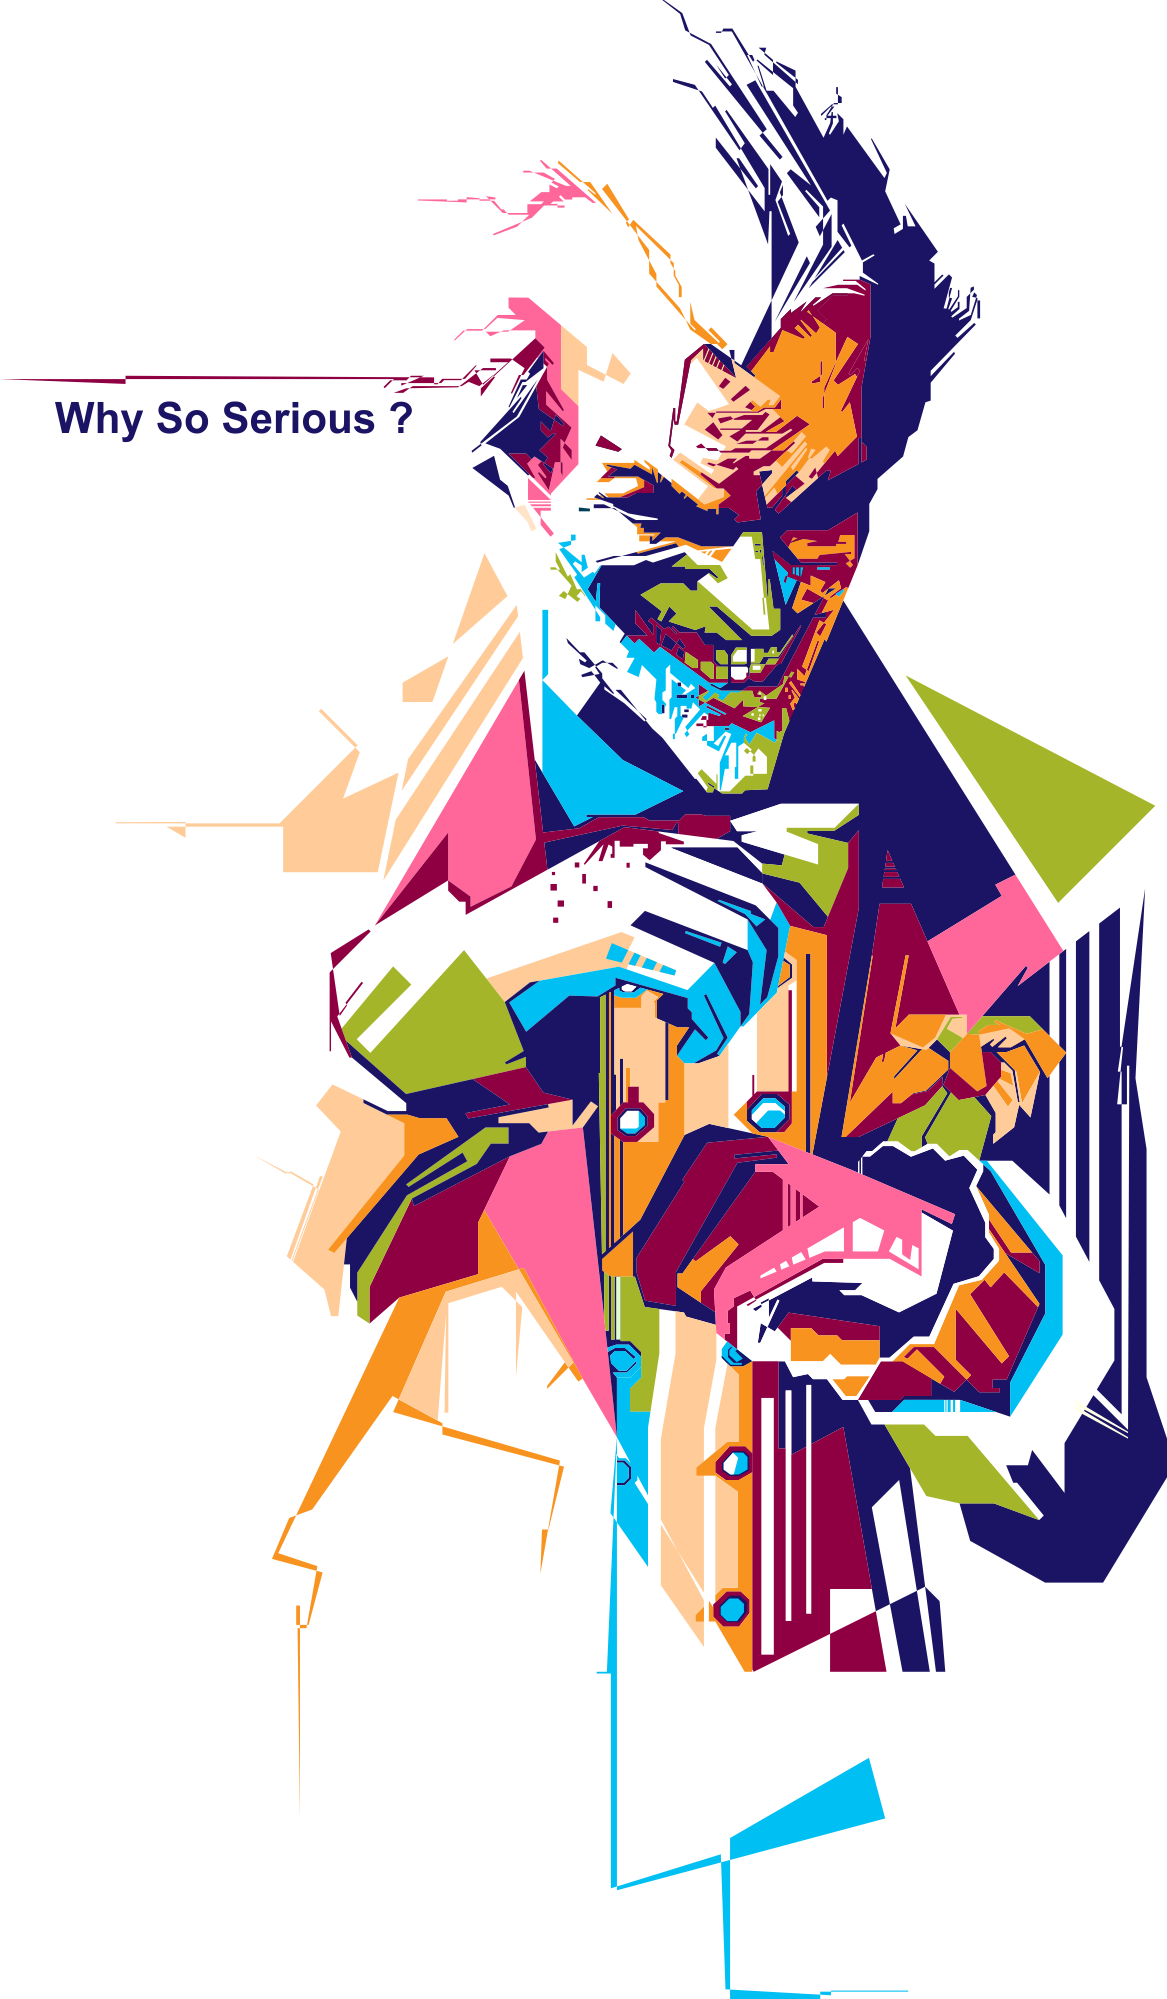 Why So Serious On Behance Dharti Baksho Us Dharti Par Rehkar Use Gaali Dena Aur Kuch U Khilane Ka Prayas Tumhe Purusha In 2020 Joker Drawings Joker Artwork Joker Art